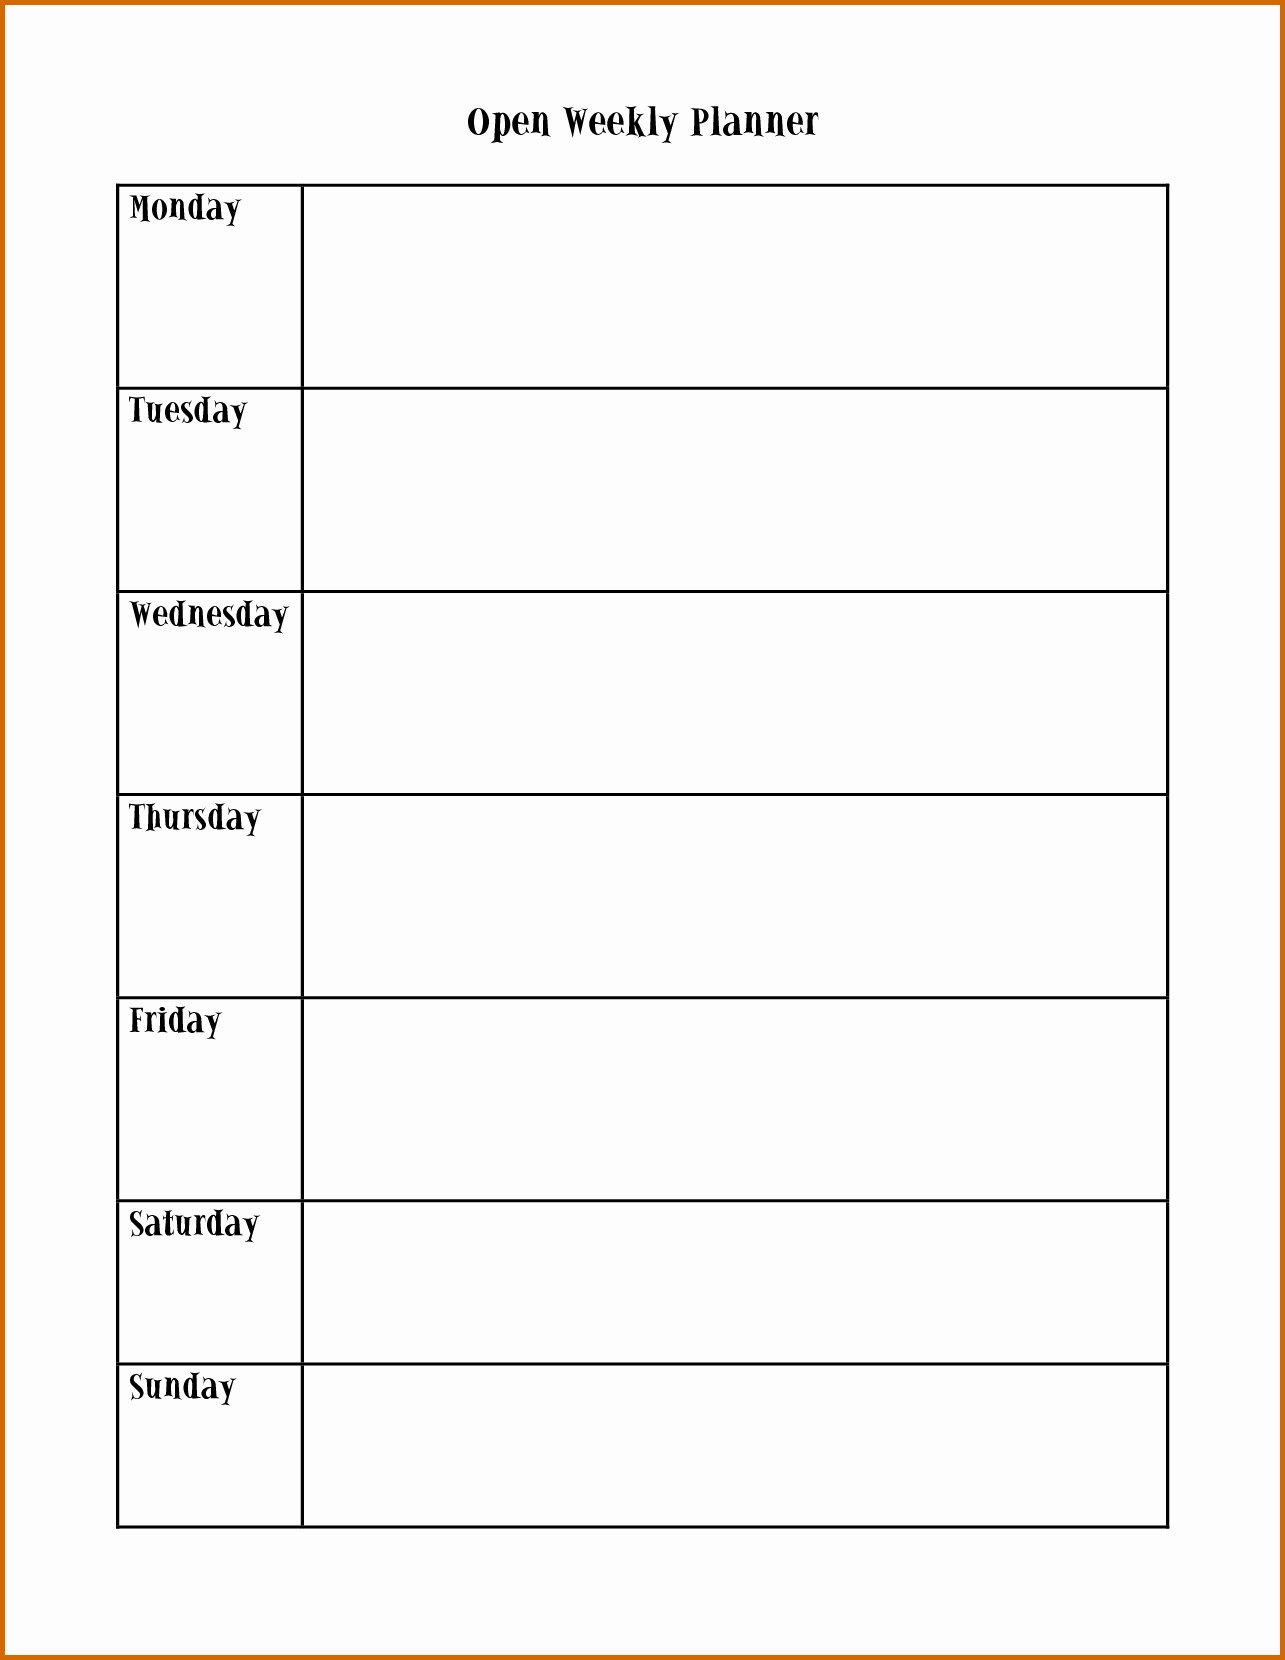 Schedule Plate Monday Through Friday Weekly Calendar Word | Smorad